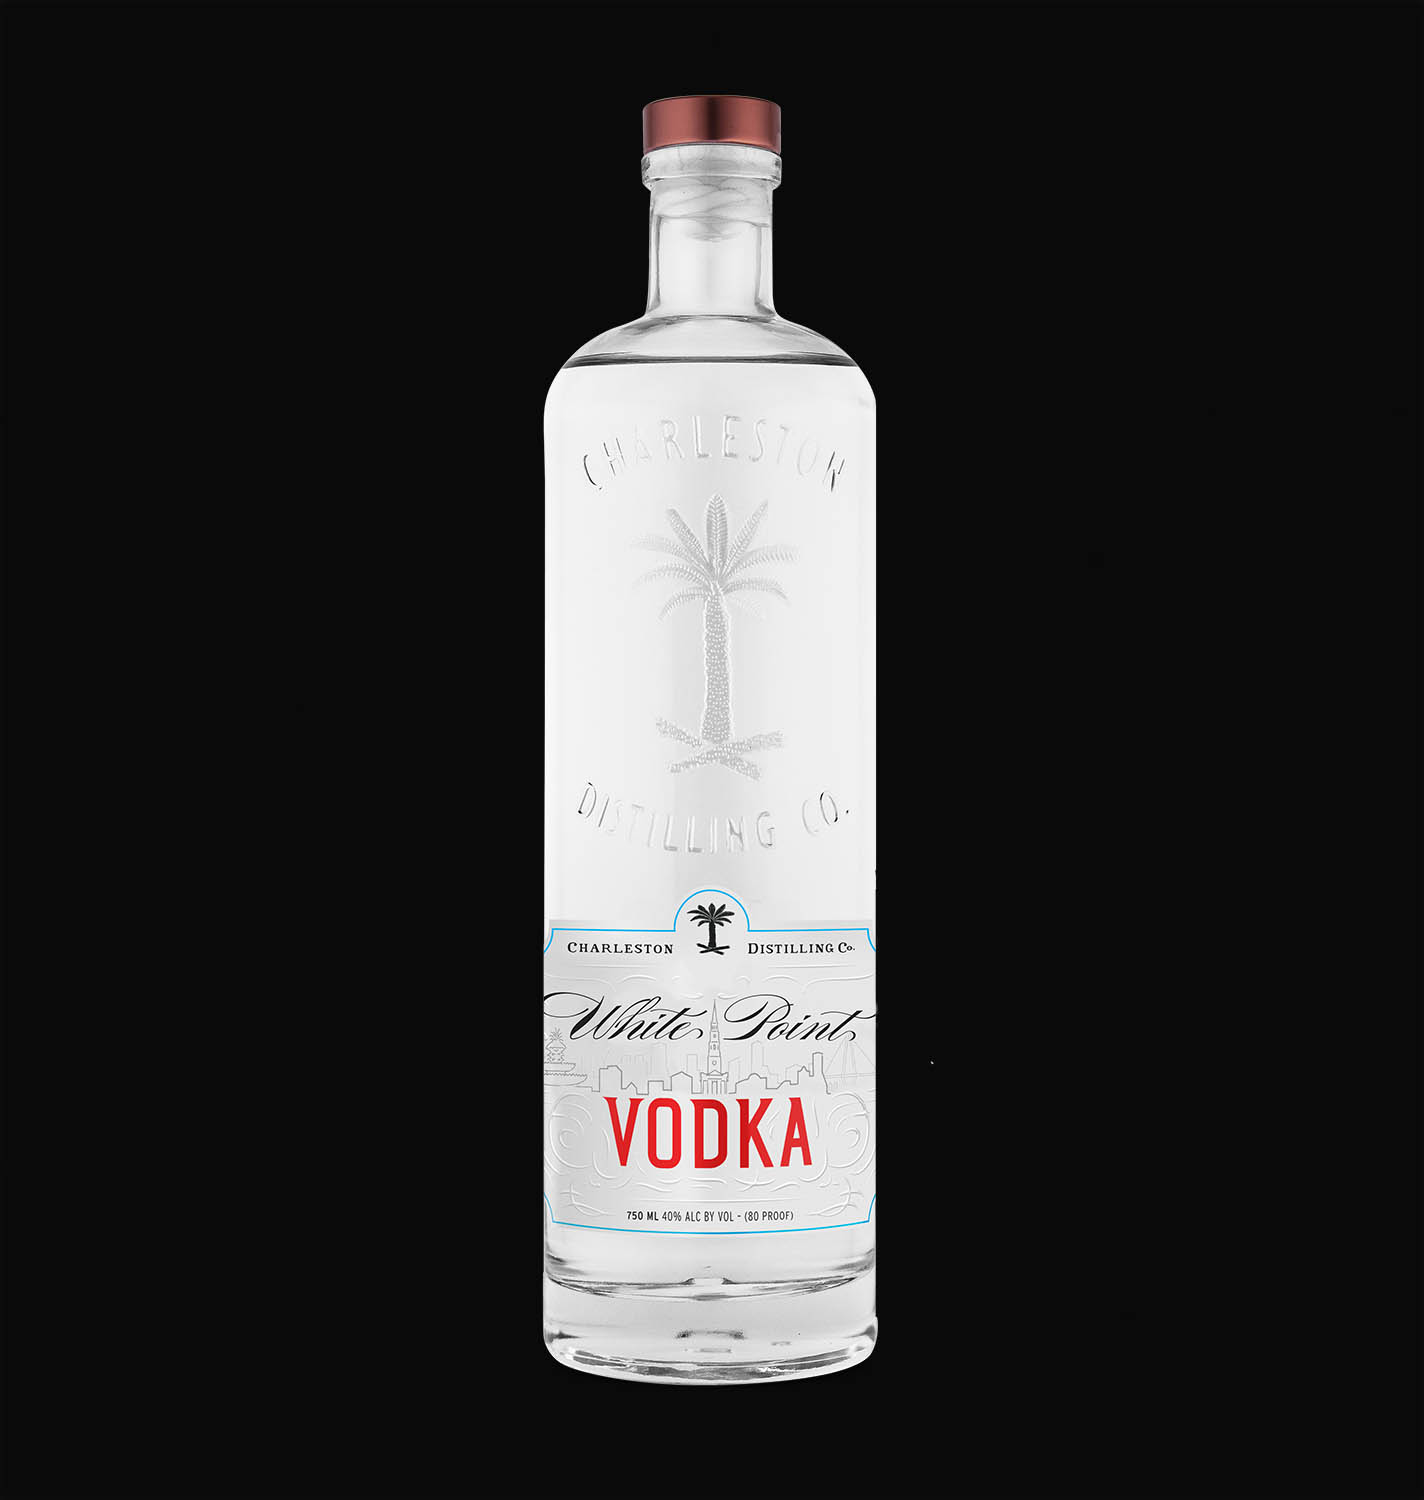 White Point Vodka - The perfect balance of sweet and peppery. That's what sets White Point Vodka apart from the rest. Our farm-milled corn and wheat is distilled down to have a clean, crisp finish. Neat, on the rocks or mixed, White Point Vodka stands up to whichever serving style you prefer.80 Proof